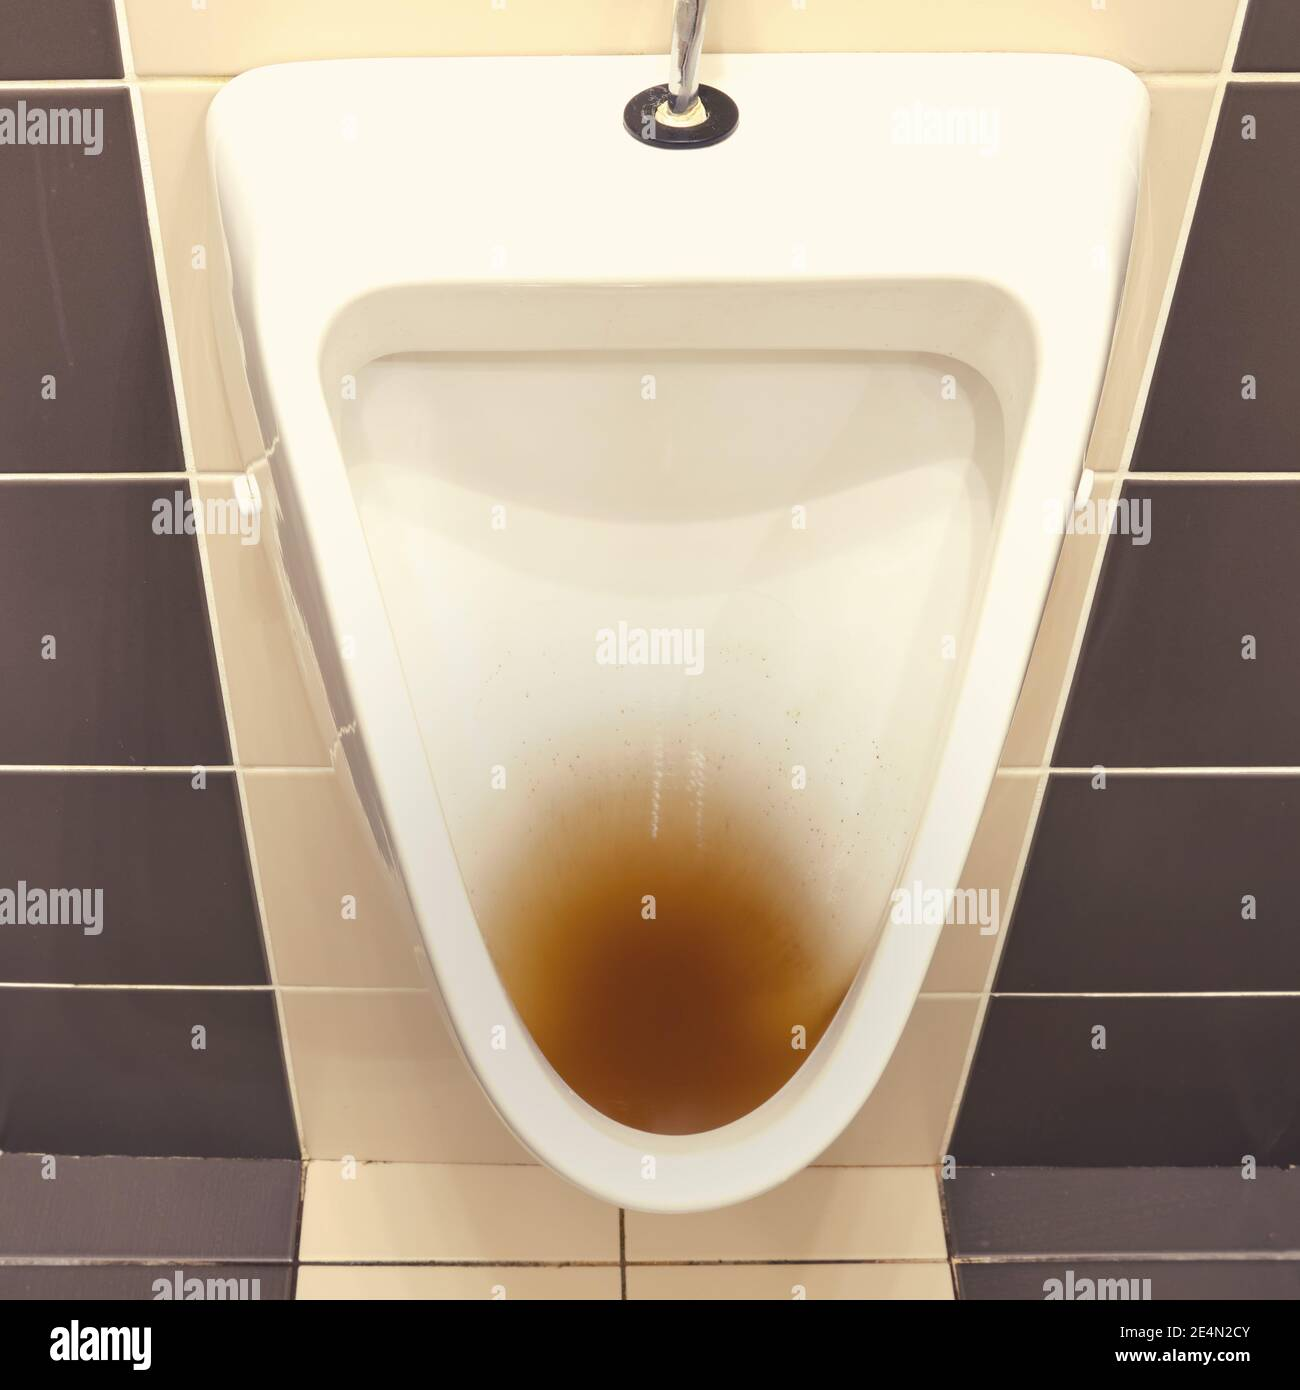 Clogged Toilet High Resolution Stock Photography And Images Alamy